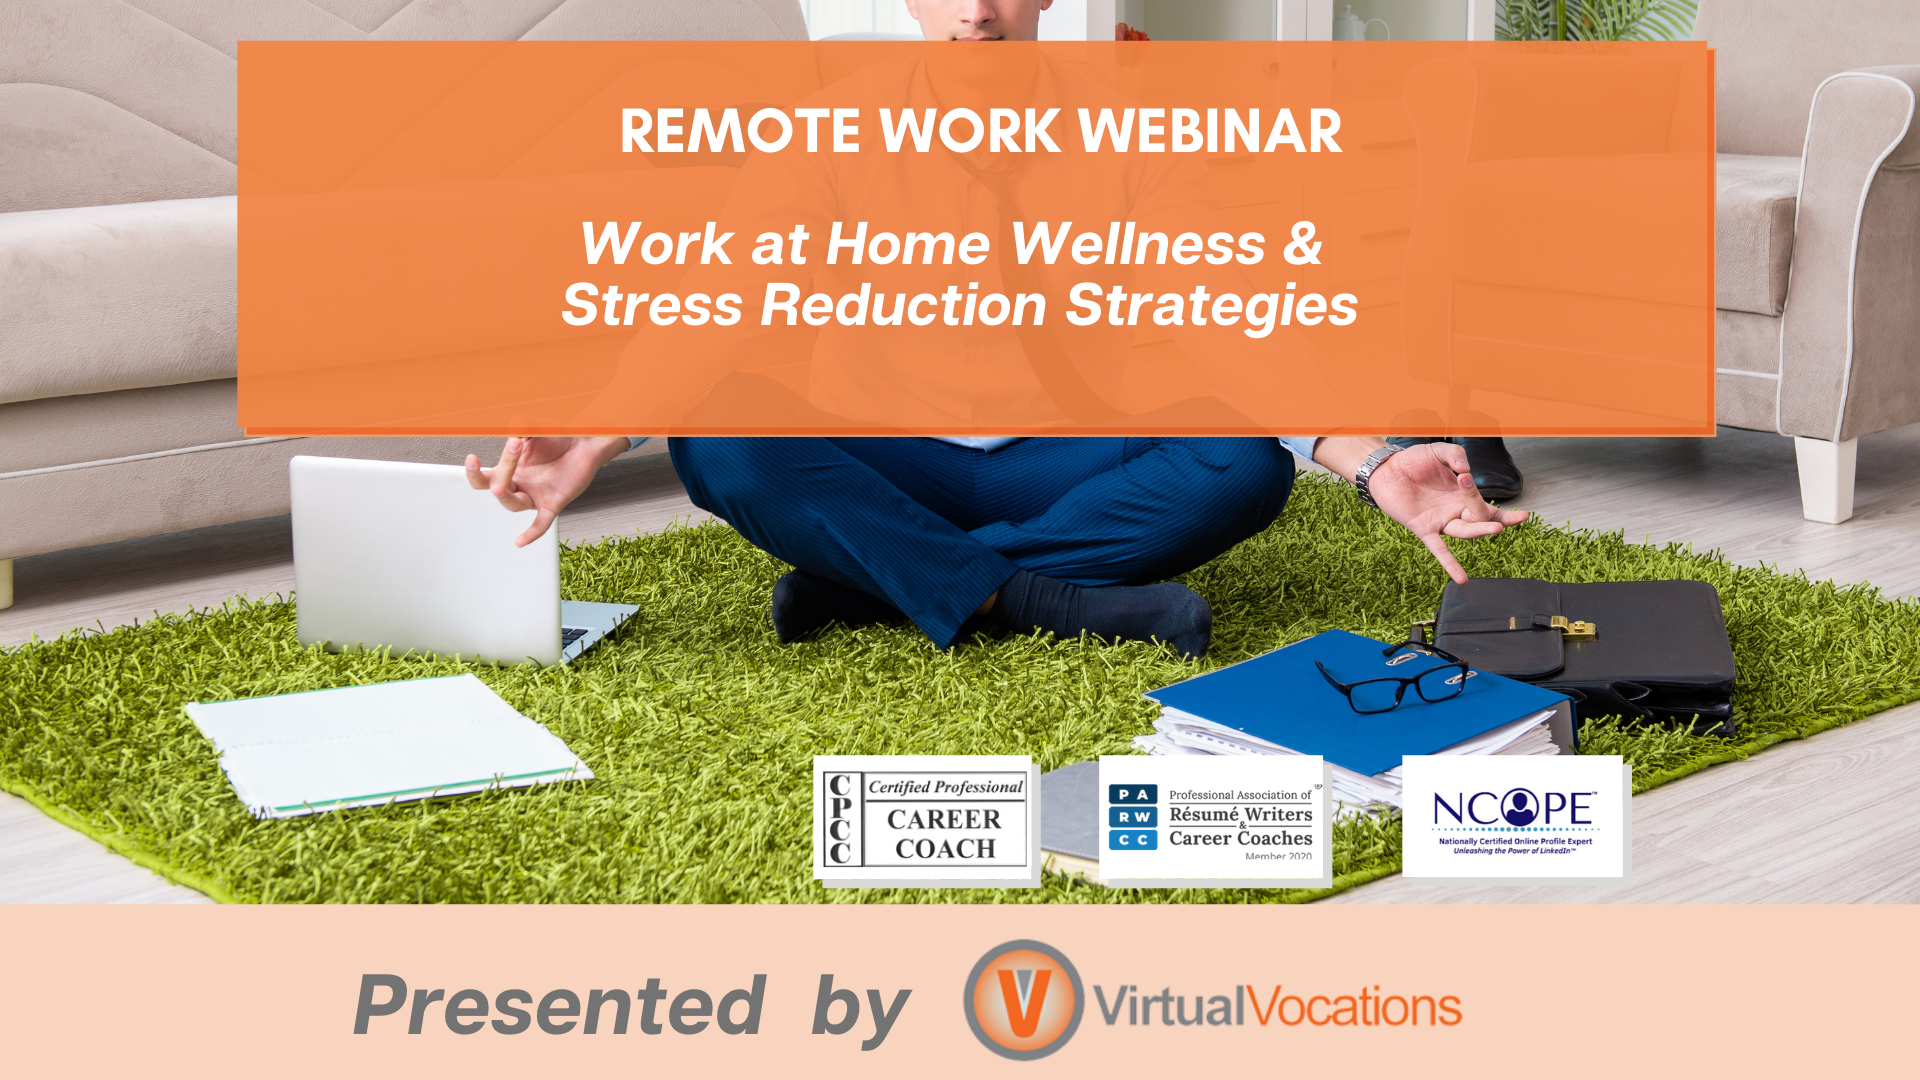 Work at Home Wellness & Stress Reduction Strategies